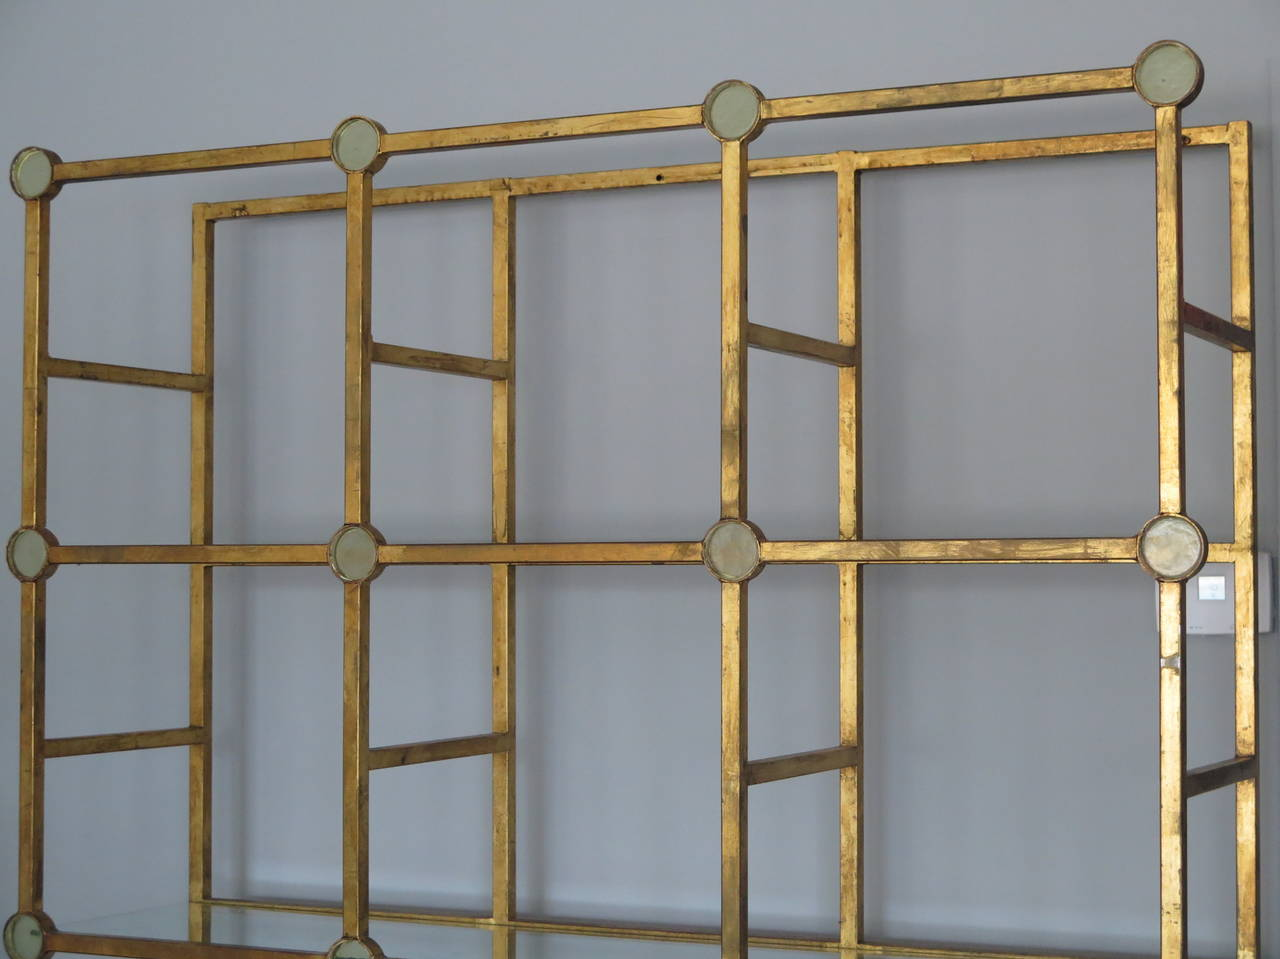 Unusual Étagerè in Gilt Metal and Glass 2